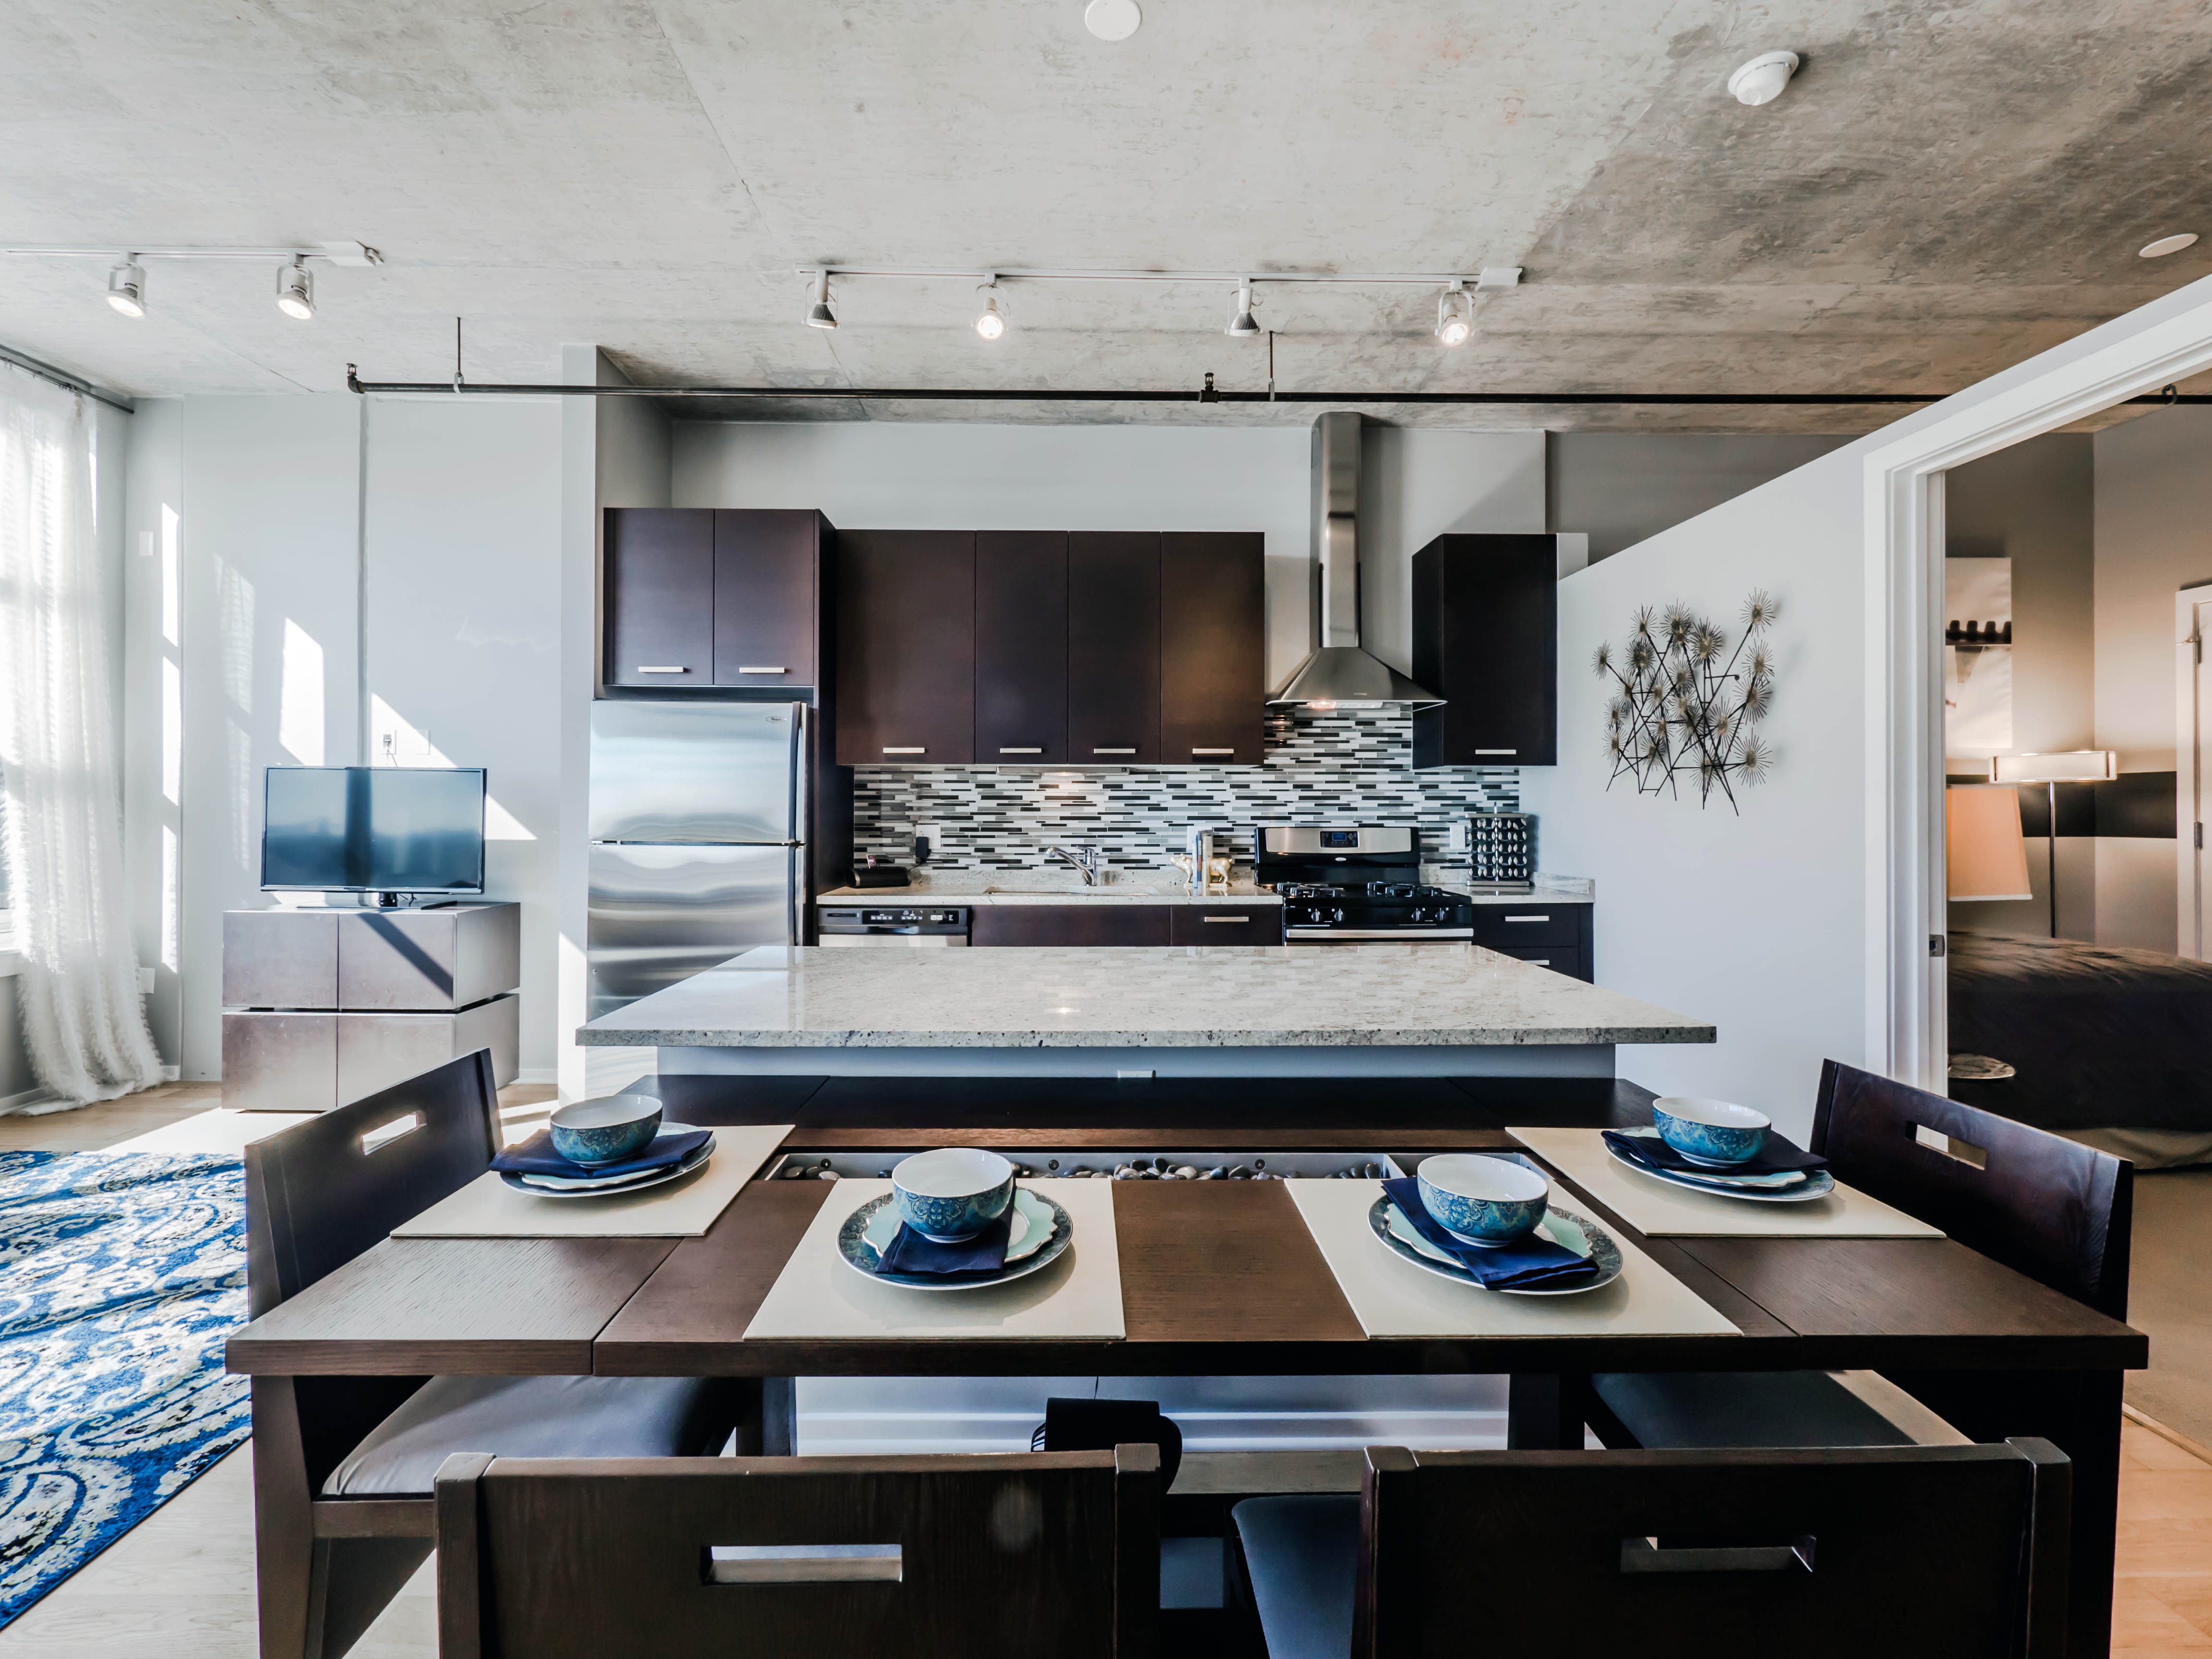 Attractive new prices on 1-bedroom South Loop lofts – YoChicago